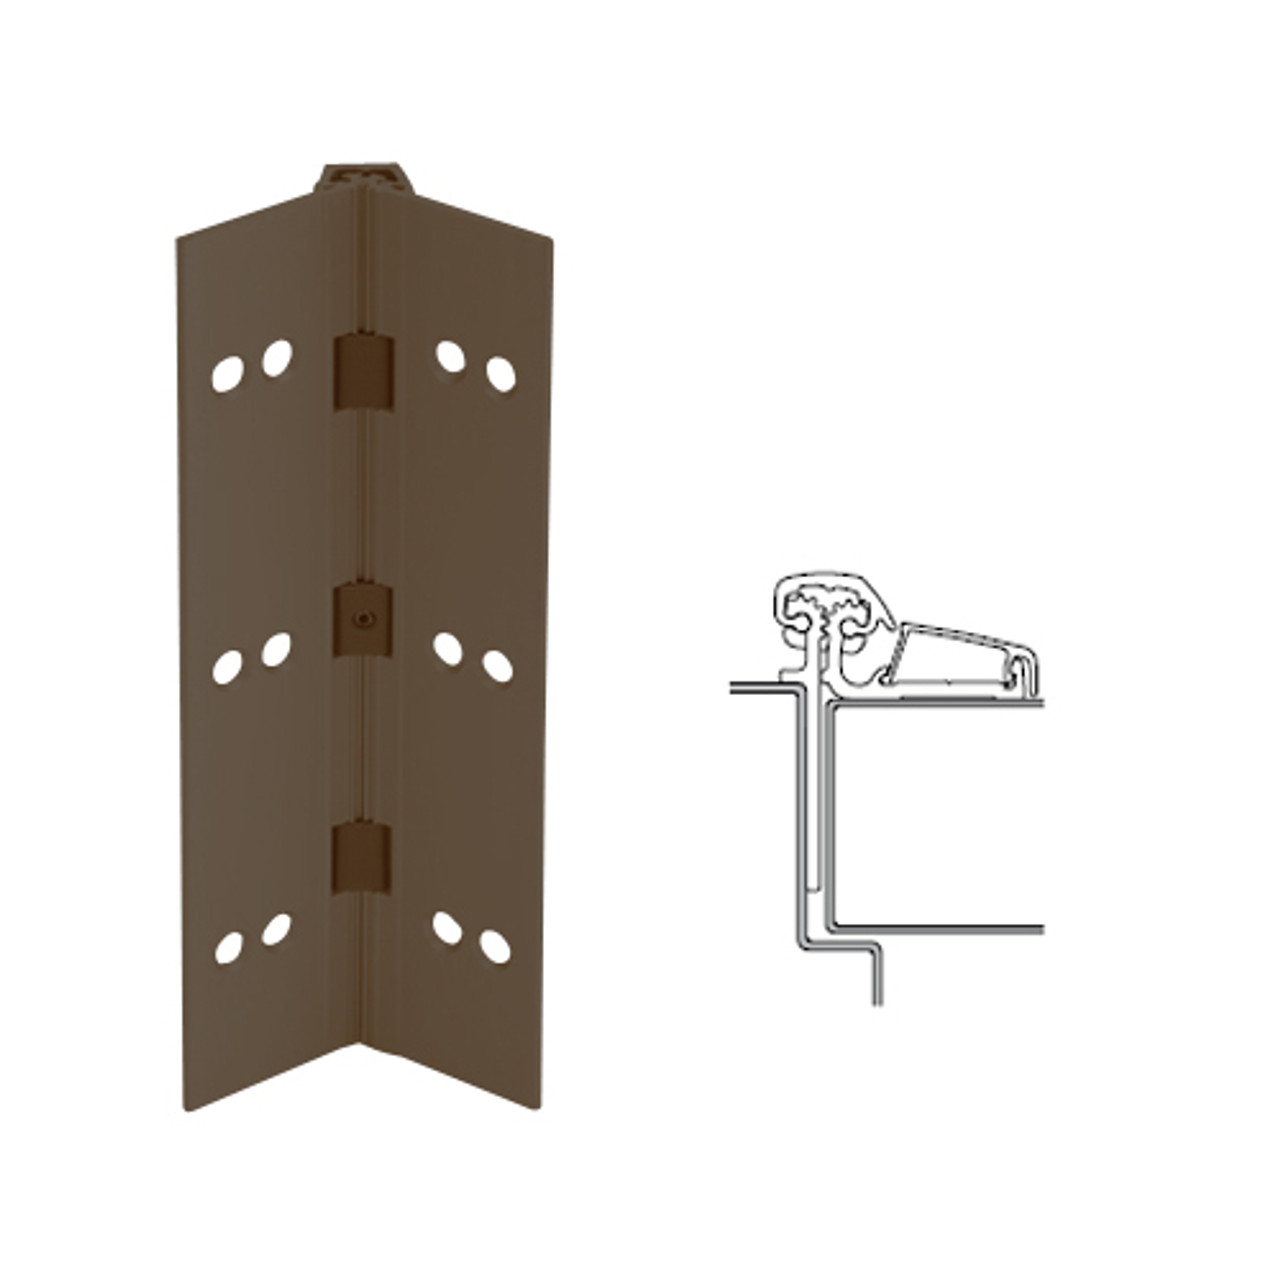 053XY-313AN-83-TFWD IVES Adjustable Half Surface Continuous Geared Hinges with Thread Forming Screws in Dark Bronze Anodized